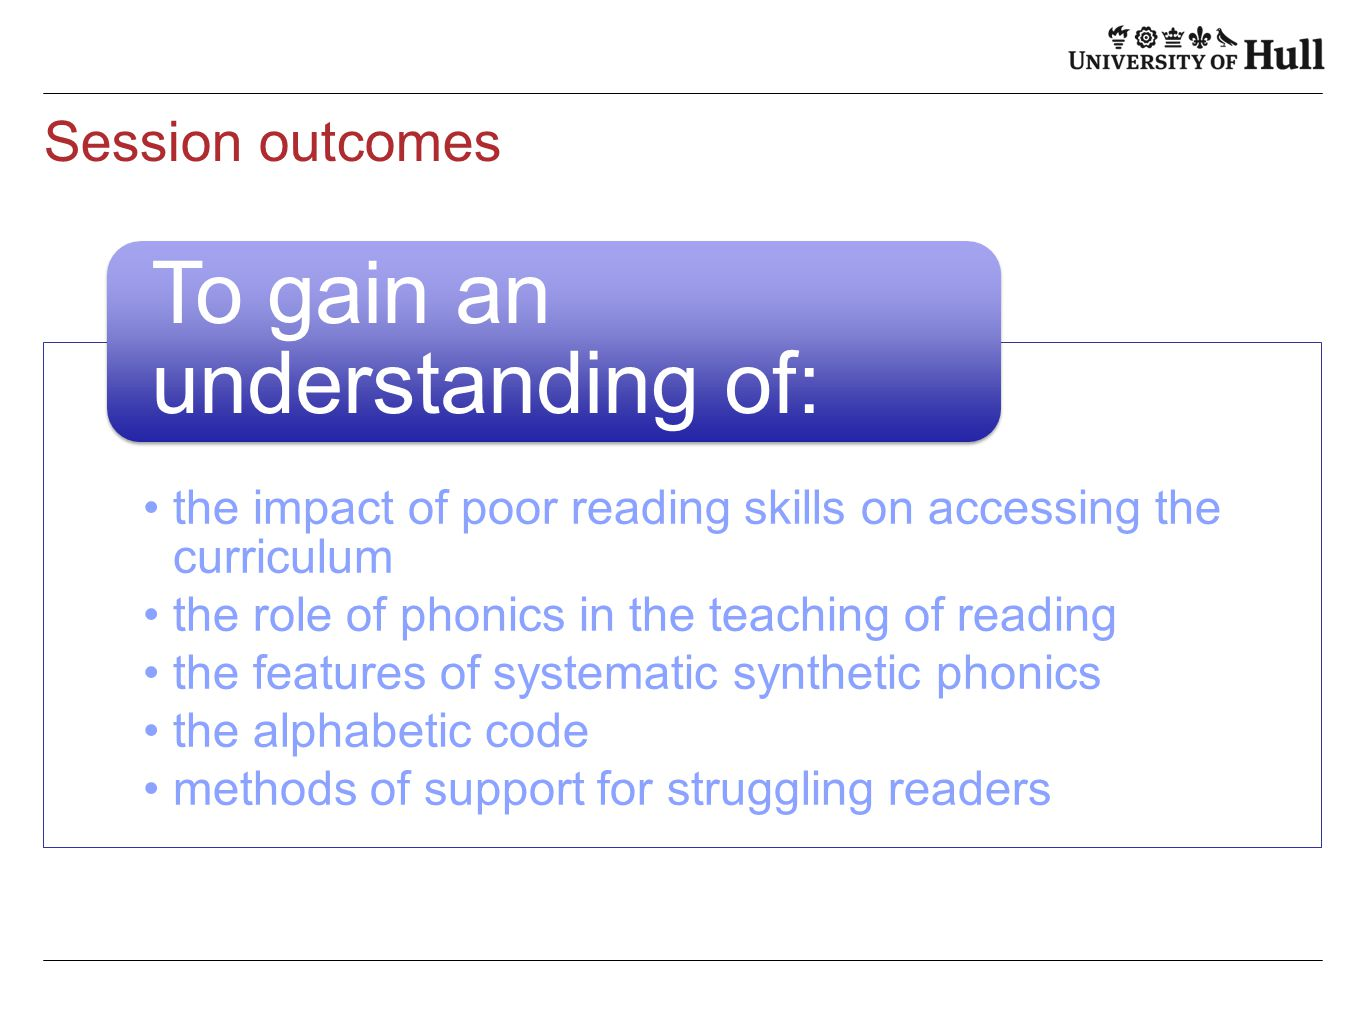 Session outcomes the impact of poor reading skills on accessing the curriculum the role of phonics in the teaching of reading the features of systemat